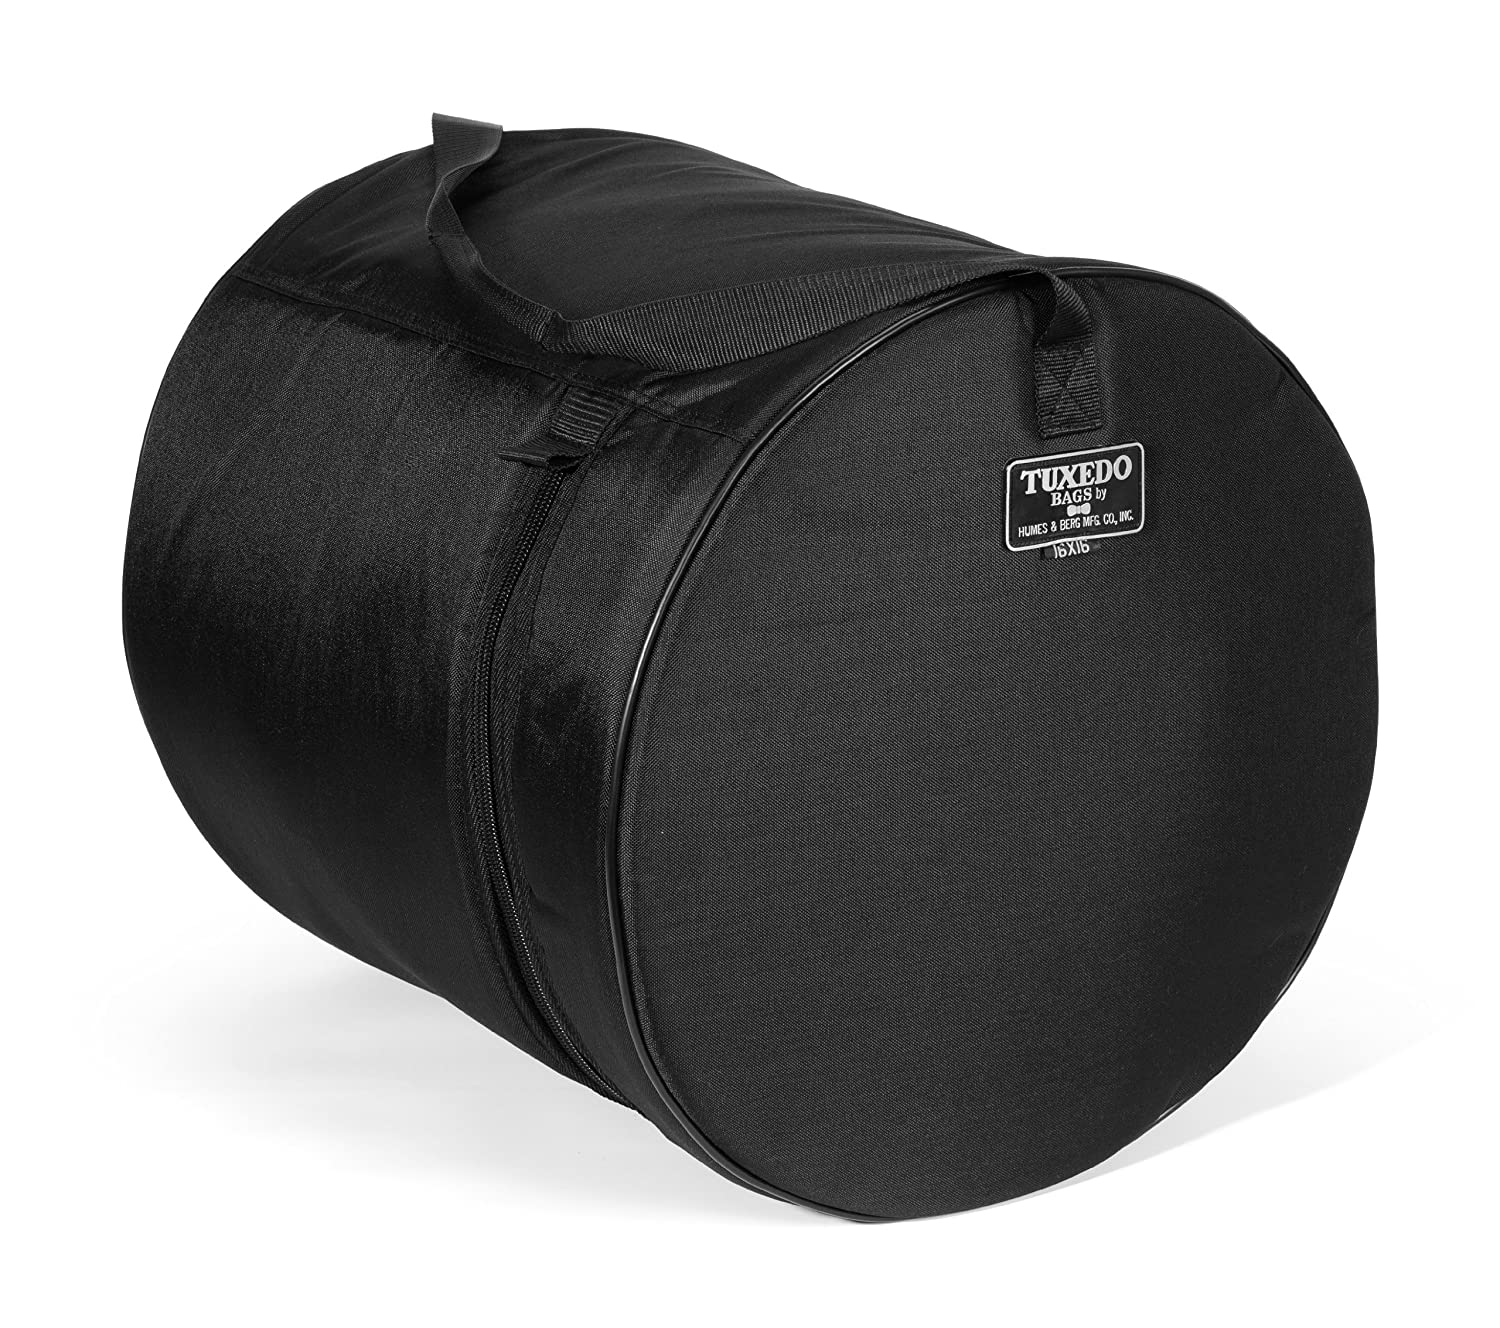 Humes & Berg TX607 14 X 16-Inches Tuxedo Floor Tom Drum Bag